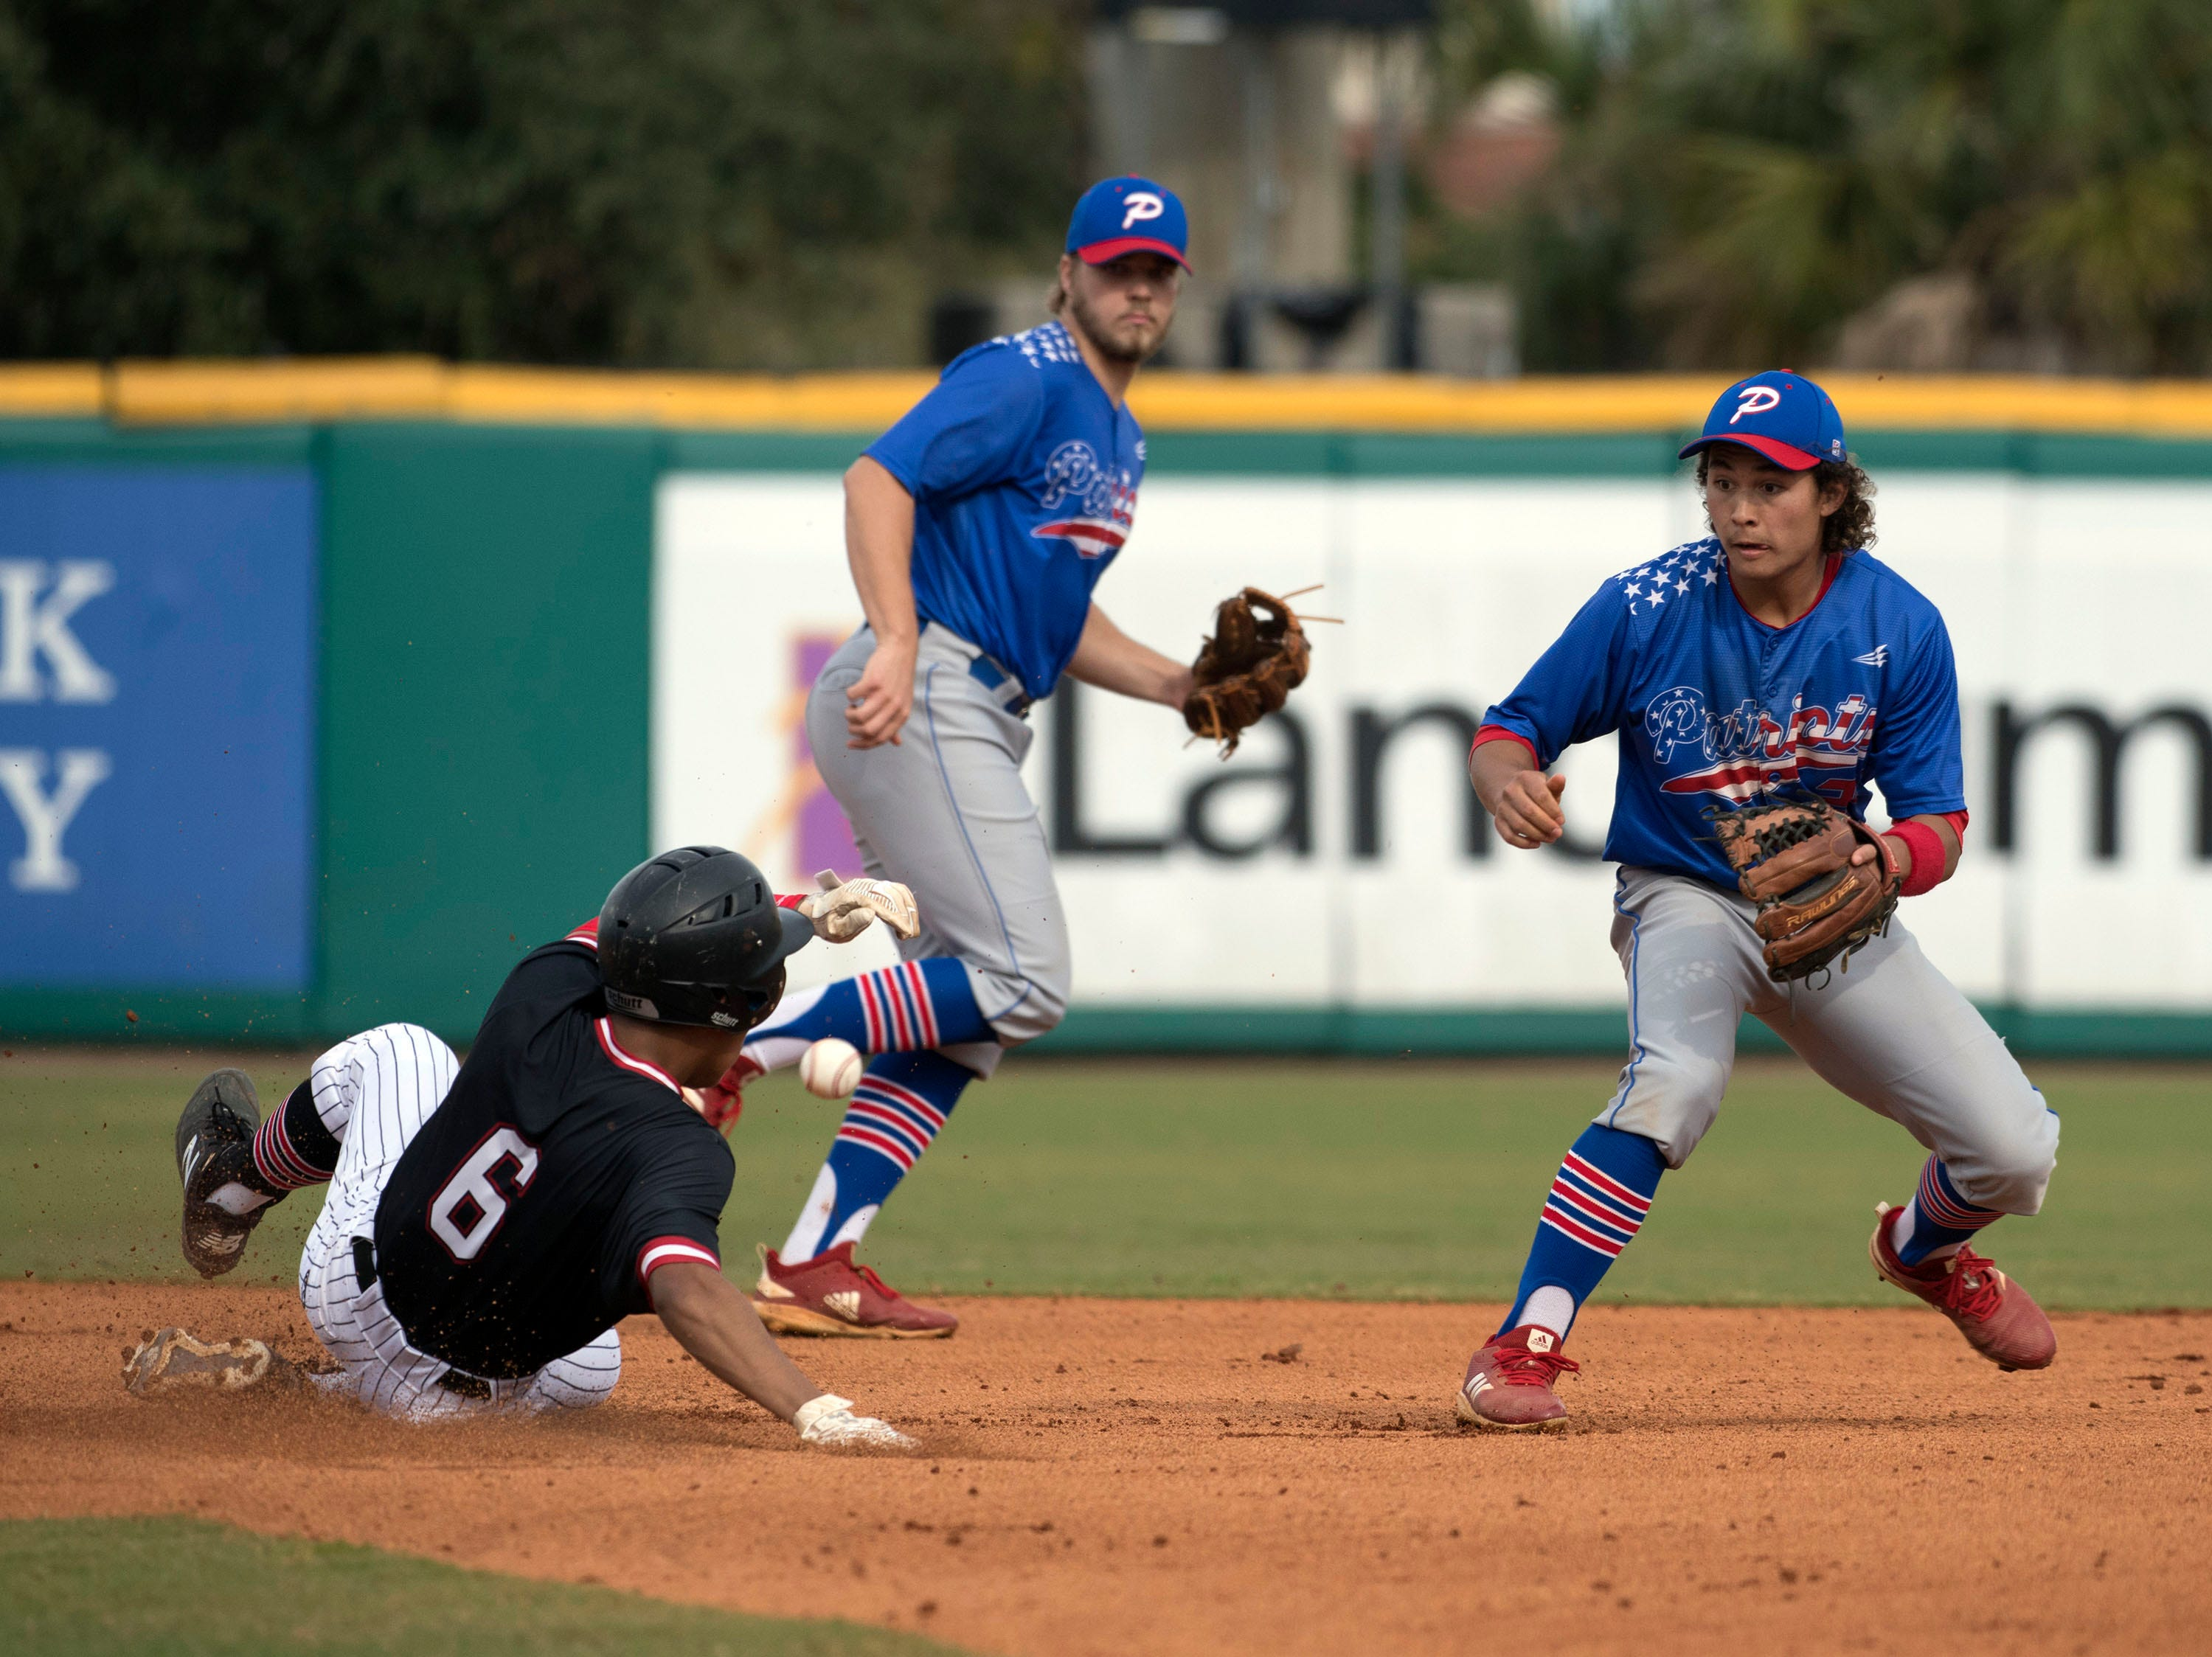 West Florida High School's Gavin Coles,(No. 6) takes second base as Pace High School's Caleb Vincent, (No. 24) and Aidan Gilroy, (No. 6) covers the bag during the Battle of the Bay tournament at Blue Wahoos stadium on Tuesday, March 12, 2019.